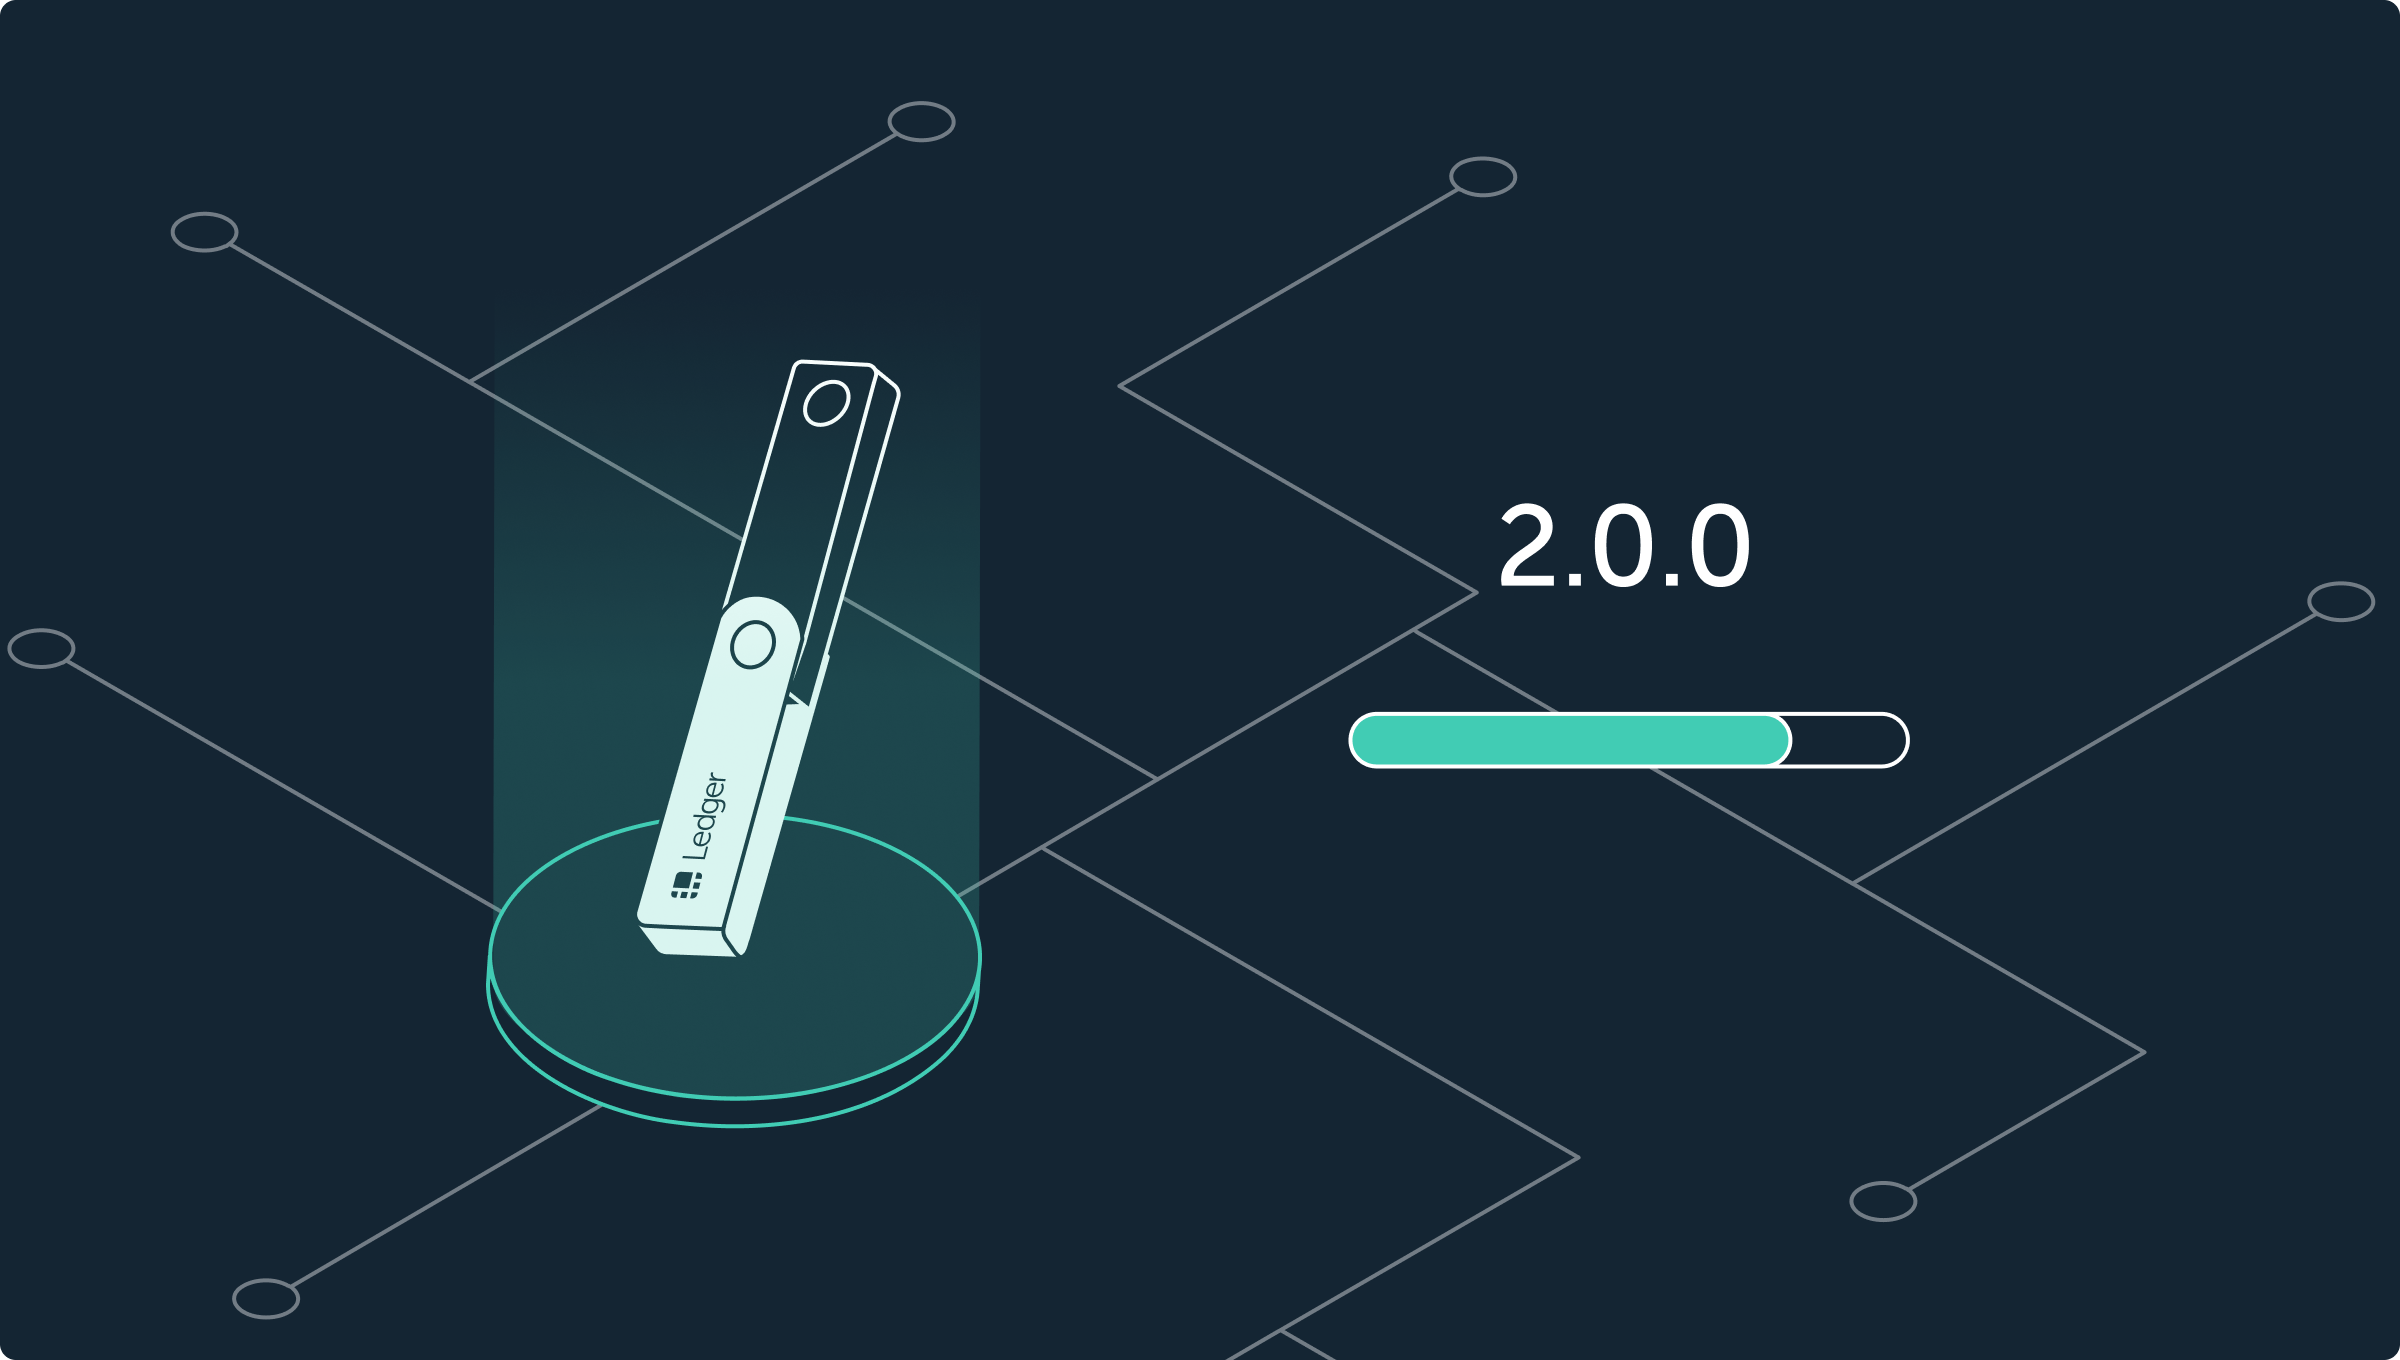 Ledger Nano X: Firmware Version 2.0.0 now available for an improved user experience